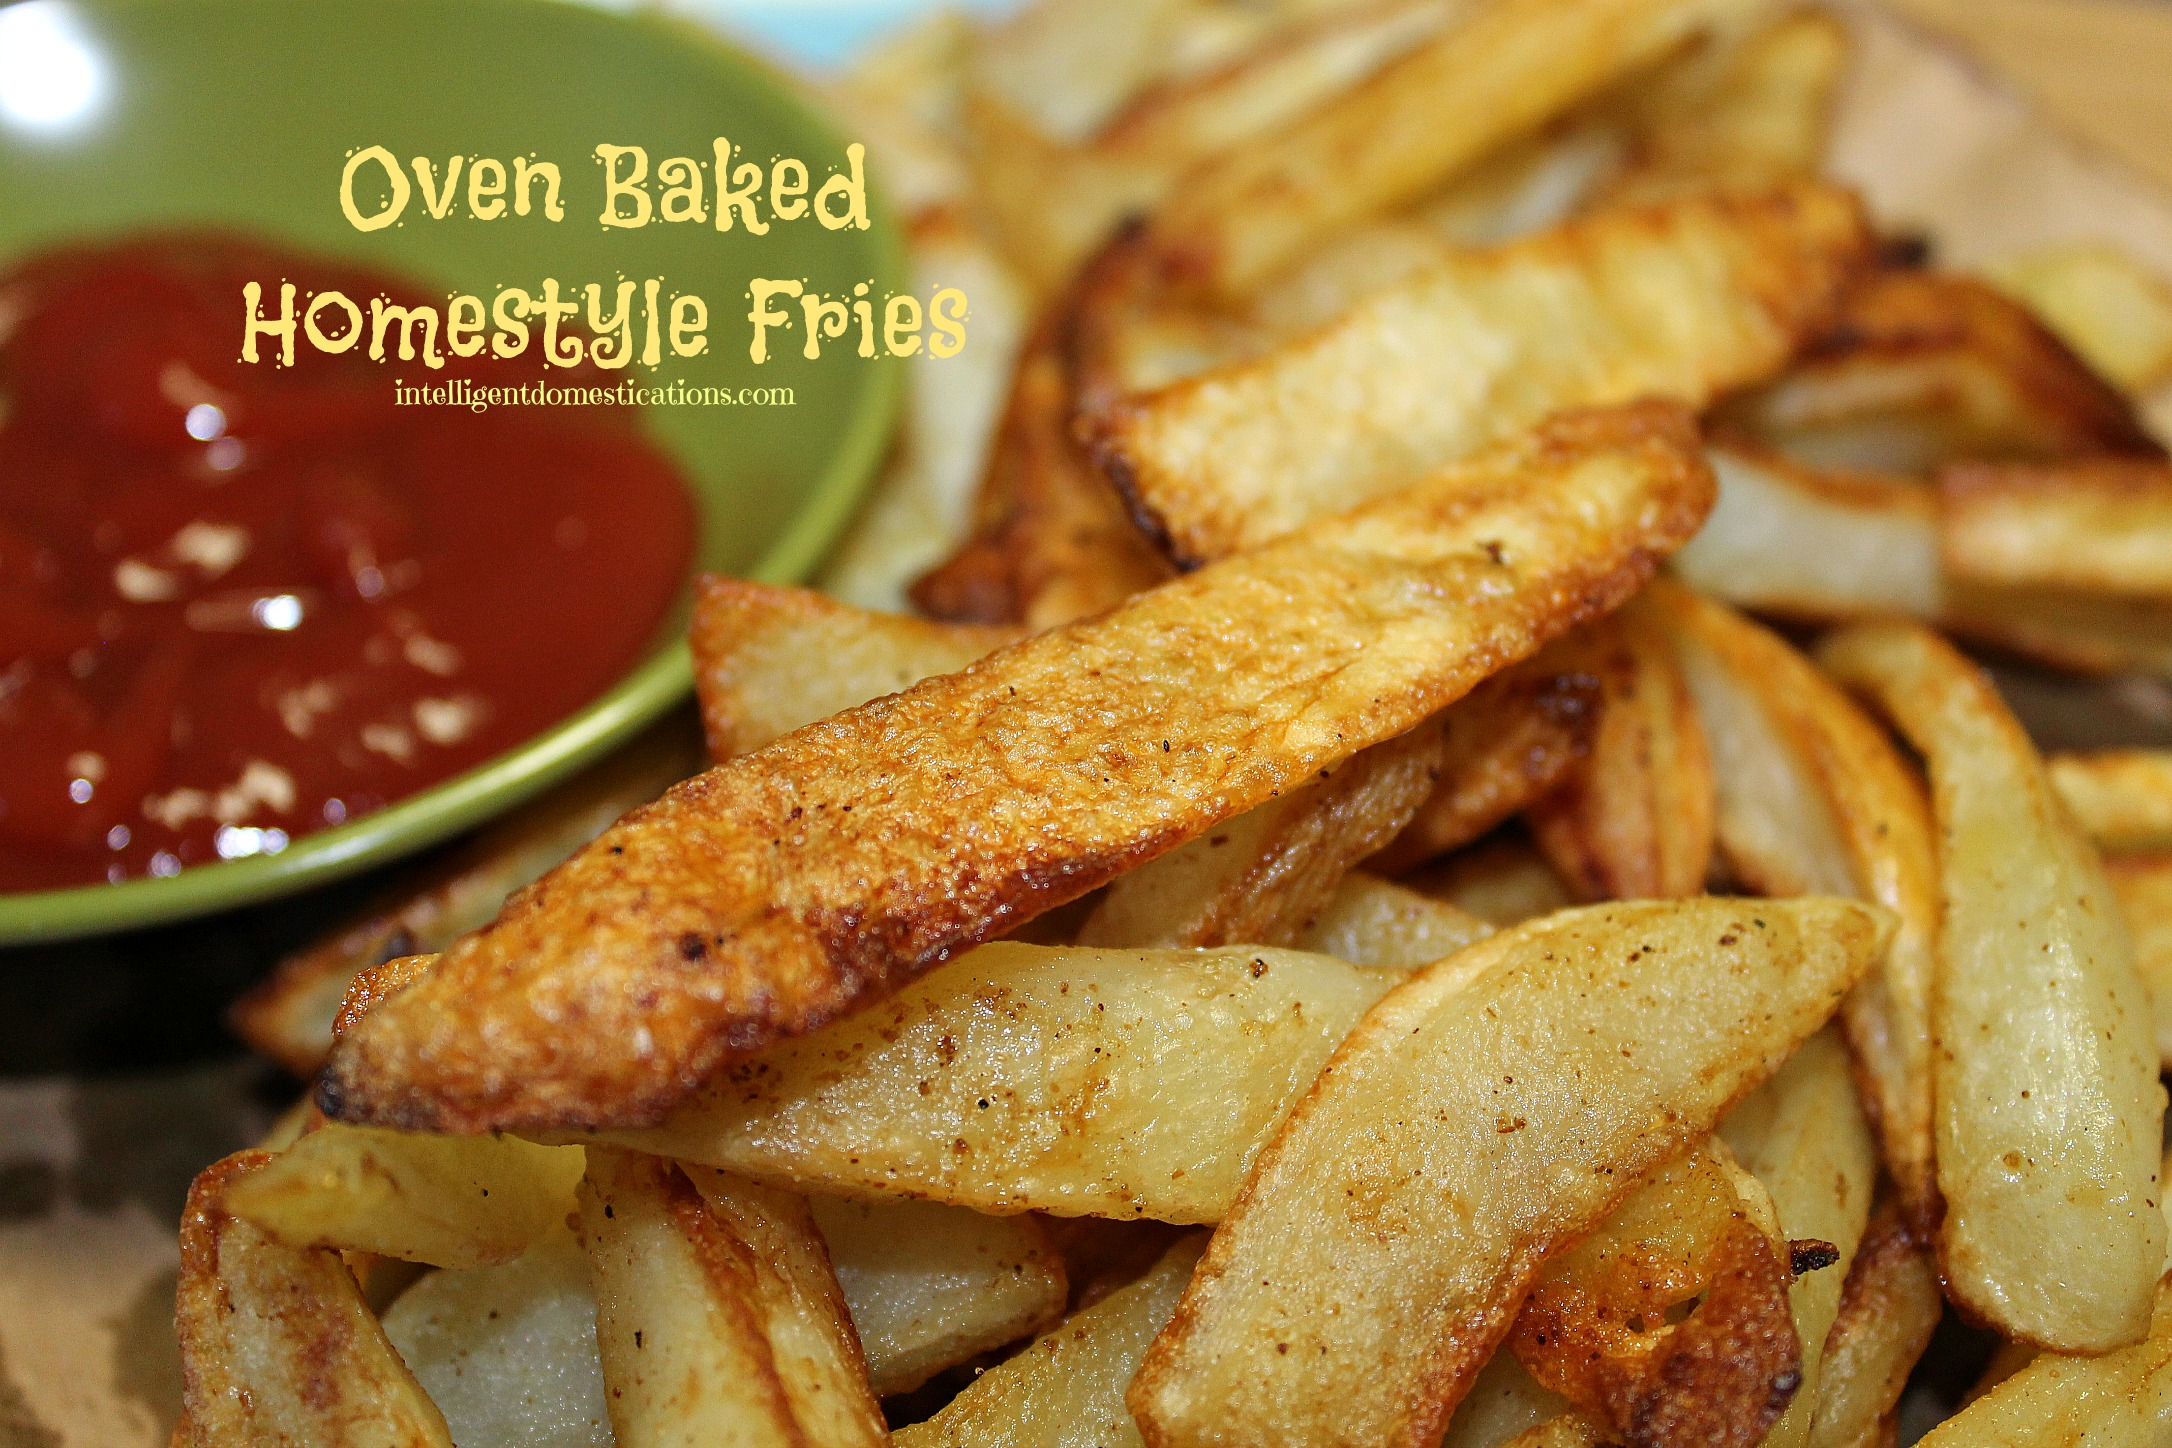 Oven Baked Homestyle Fries.intelligentdomestications.com